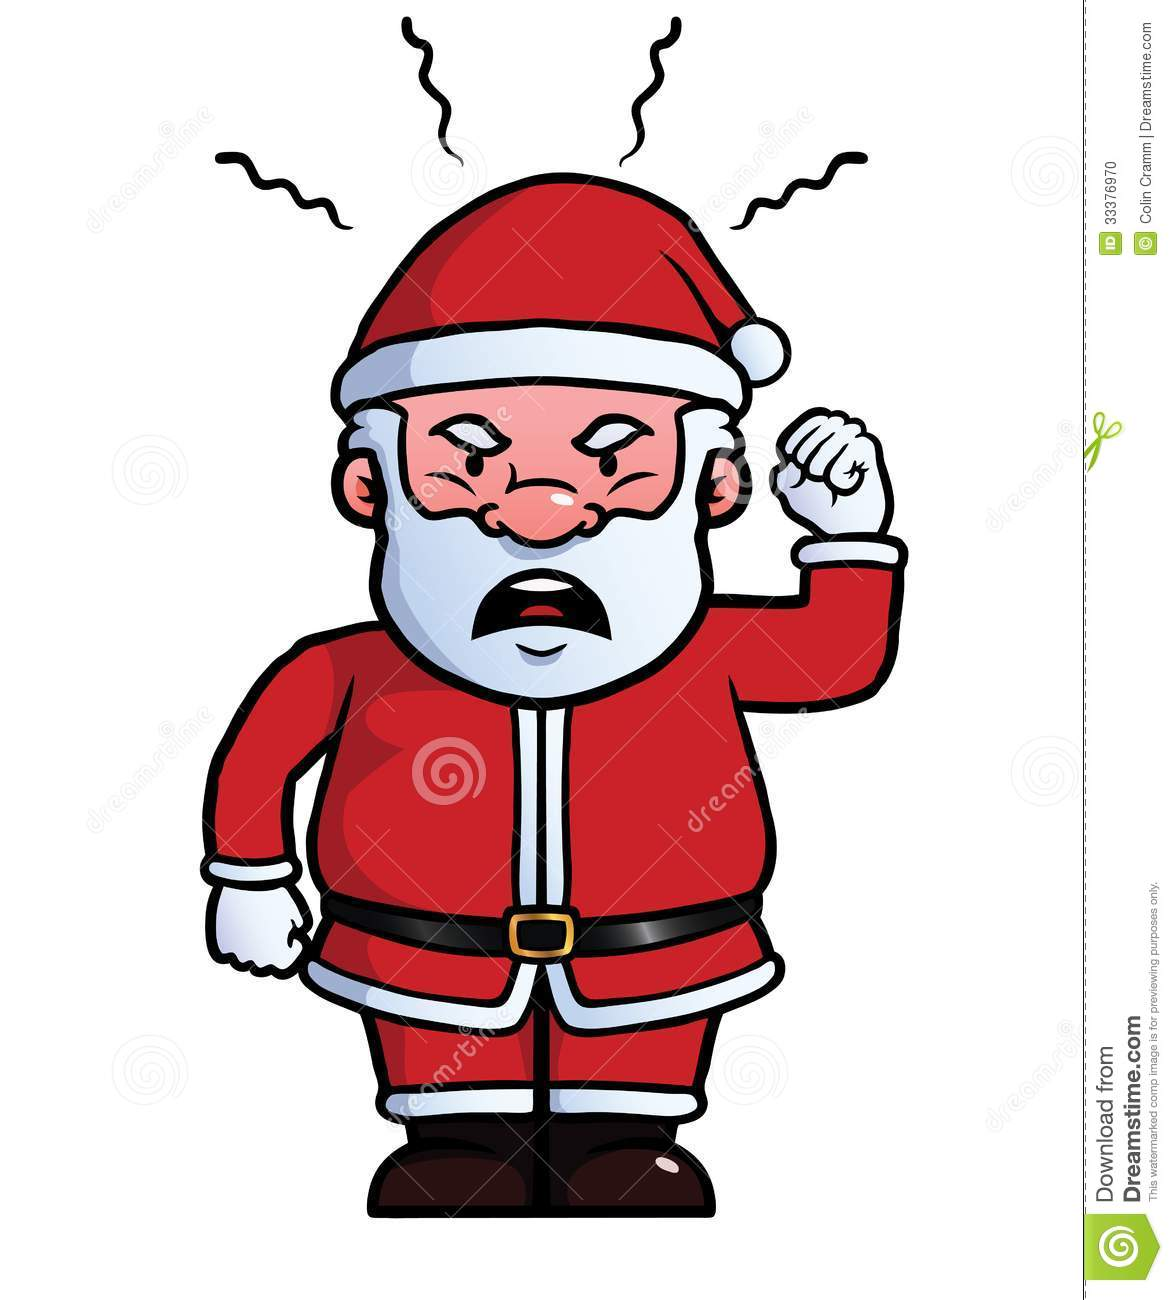 Santa Claus Being Angry Stock Photo - Image: 33376970